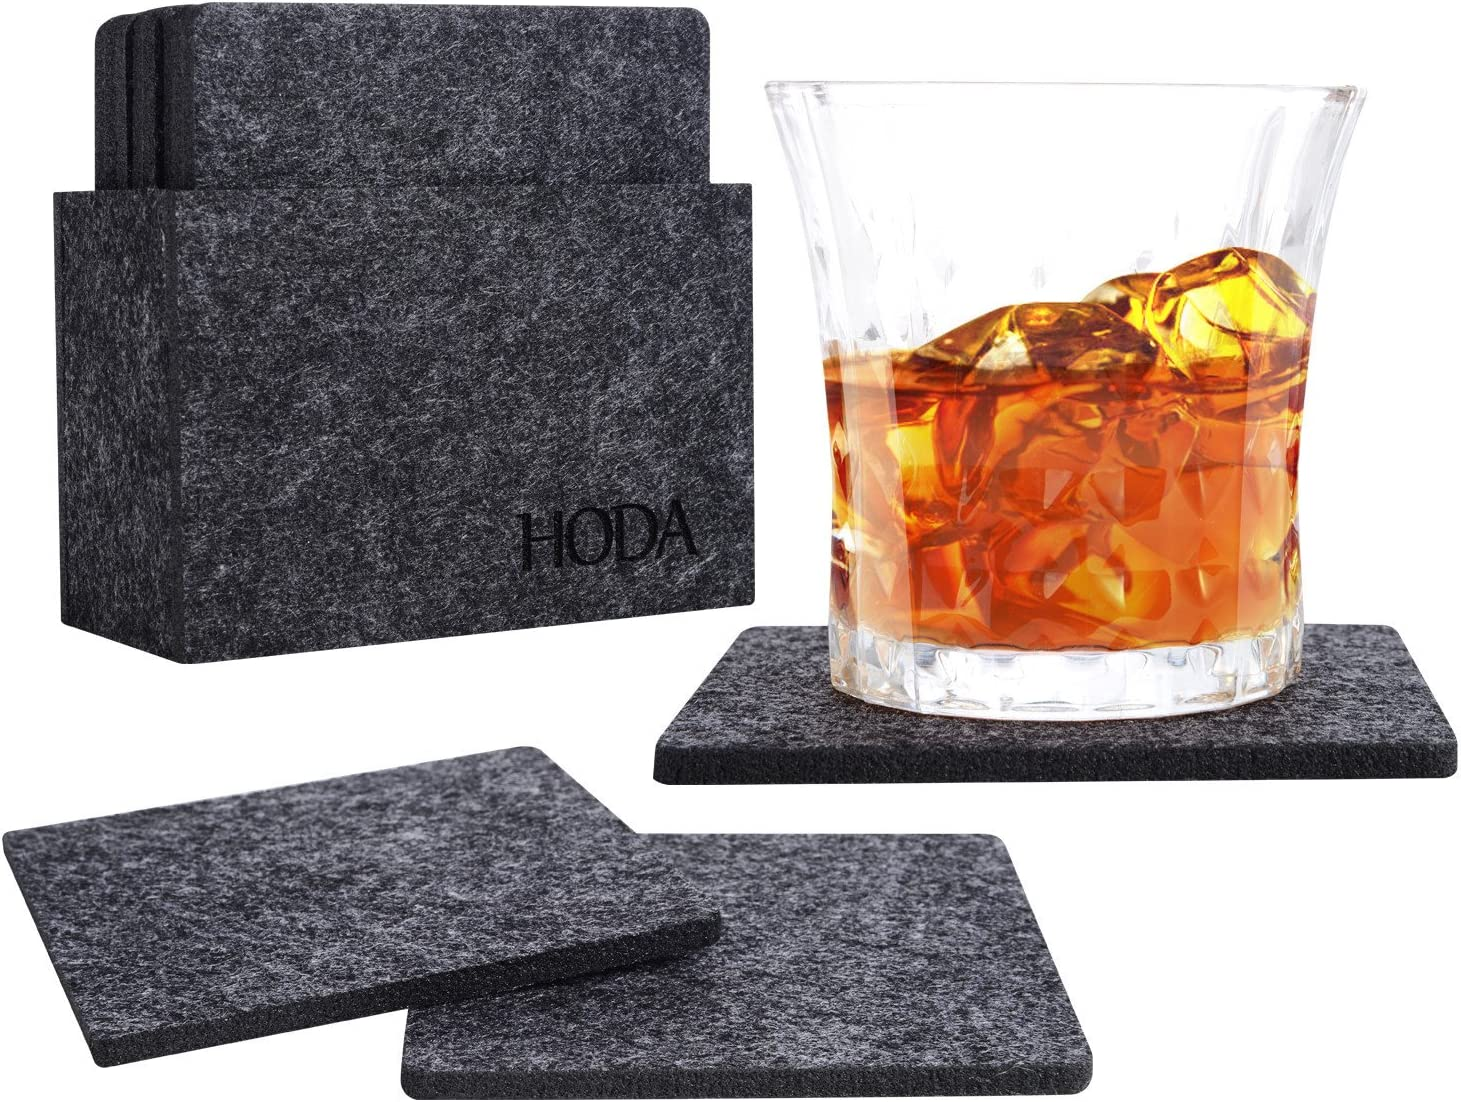 HODA Coasters for Drinks Absorbent Felt Coasters with Holder The Best Coaster Gift Set of 10 - Square